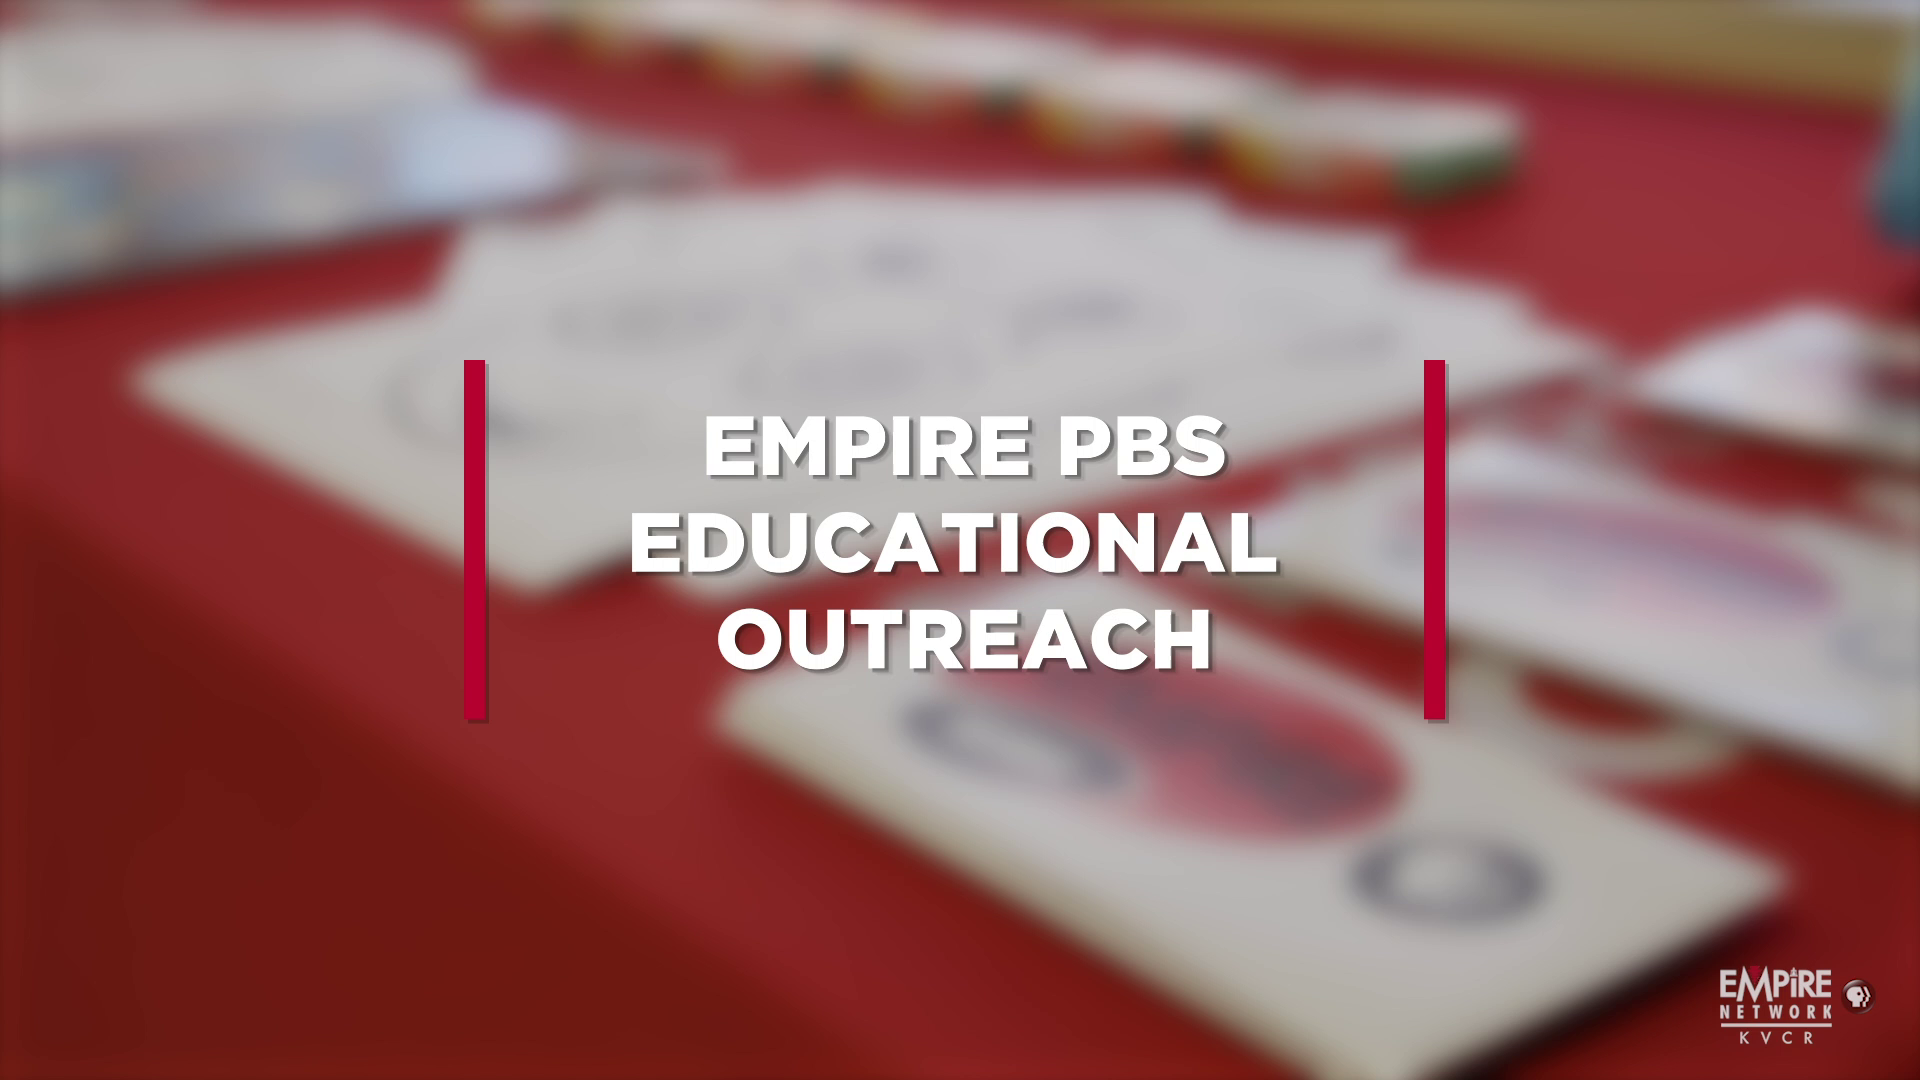 Empire PBS Educational Outreach